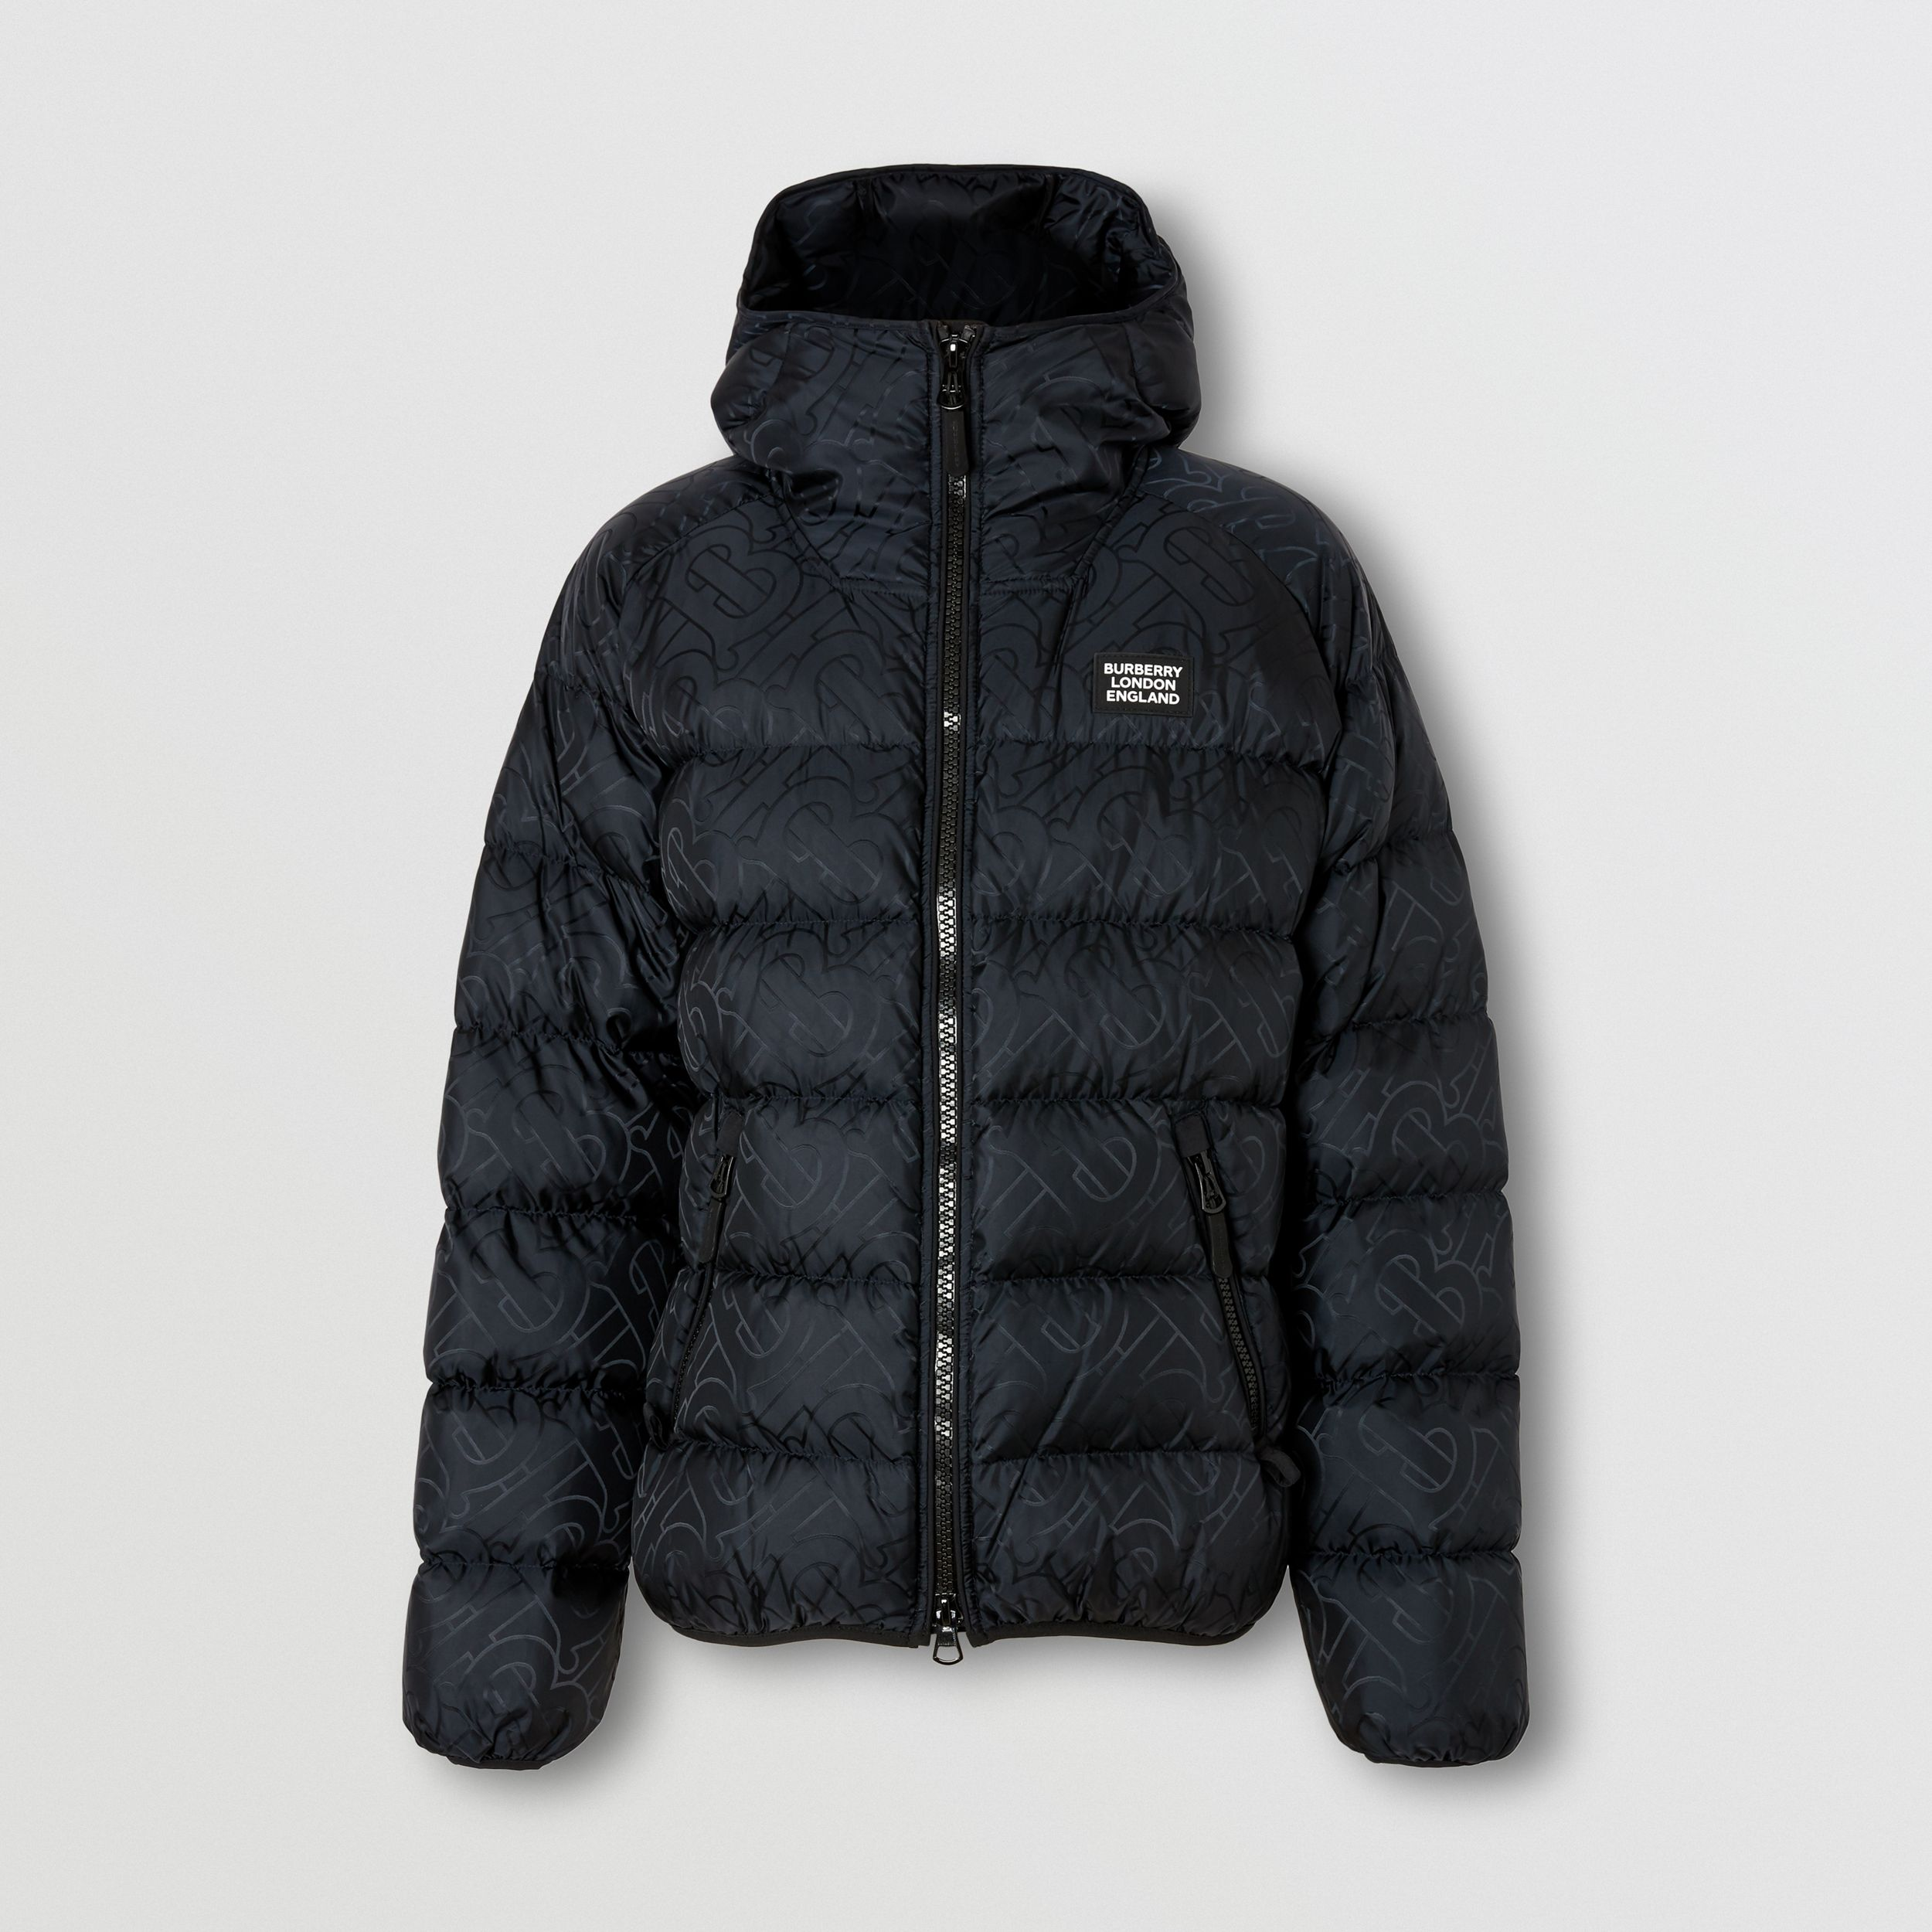 Monogram Jacquard Hooded Puffer Jacket in Black - Men | Burberry - 4